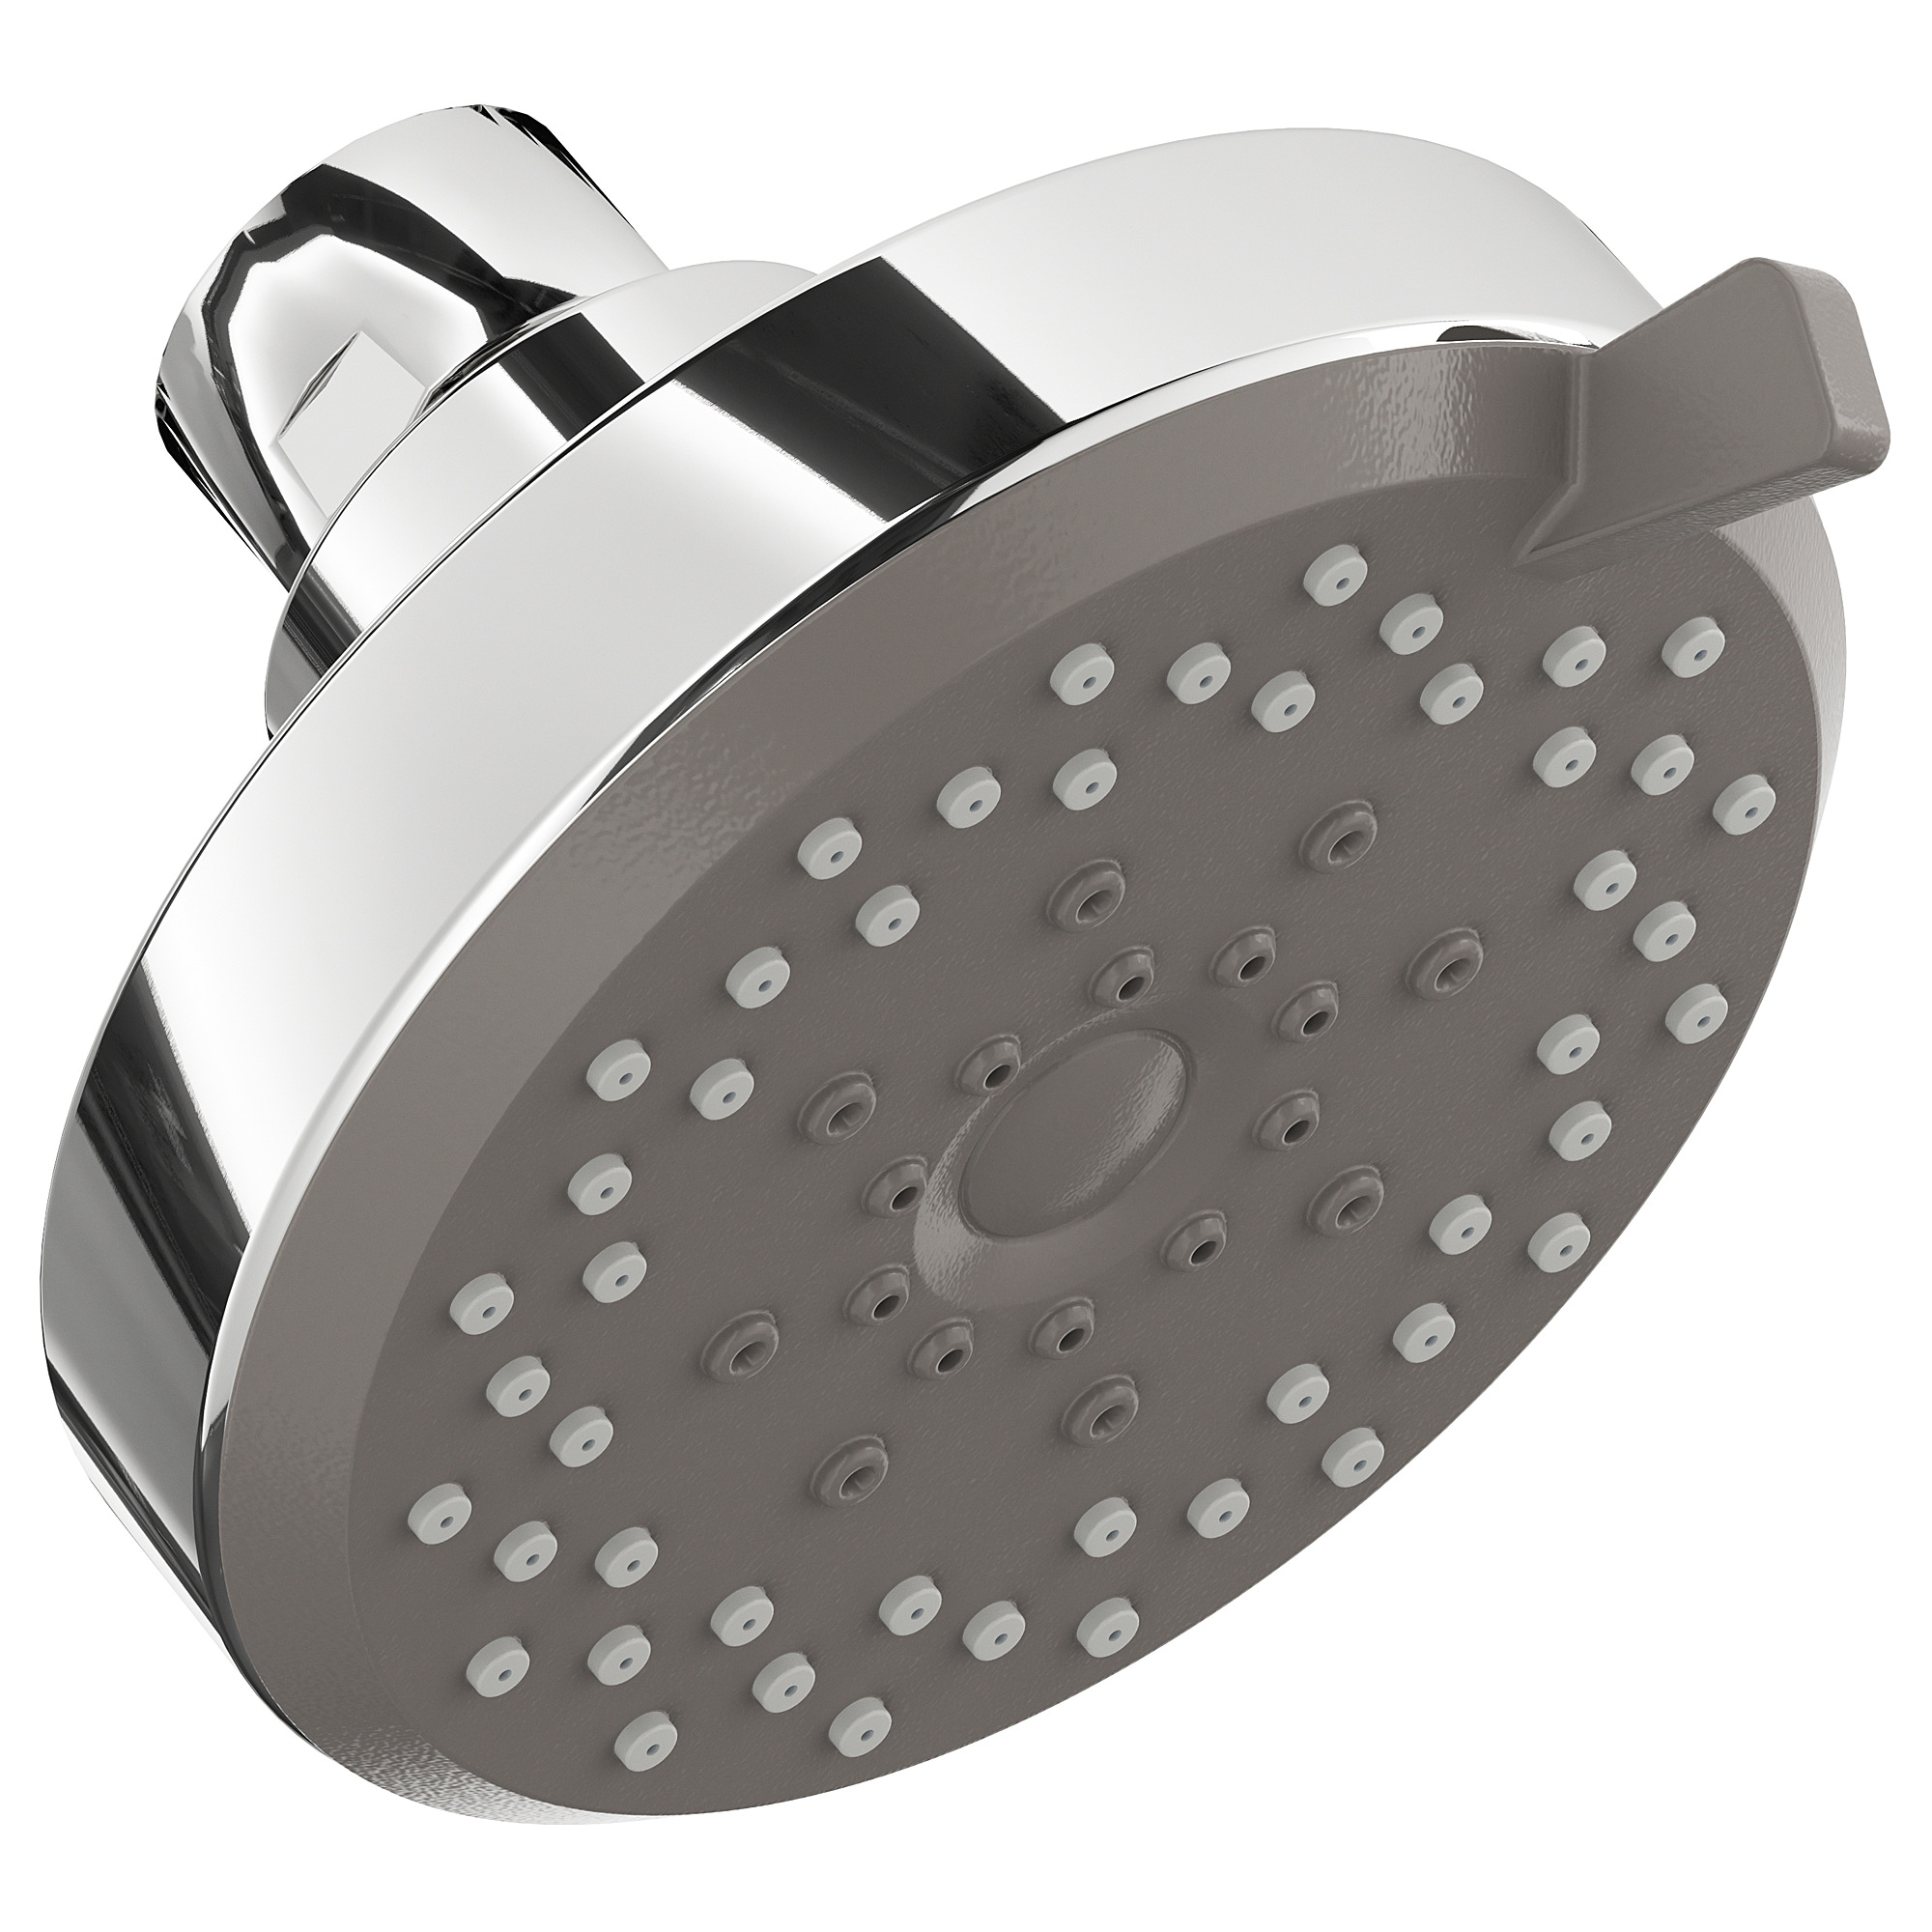 BROGRUND 5-spray shower head - IKEA